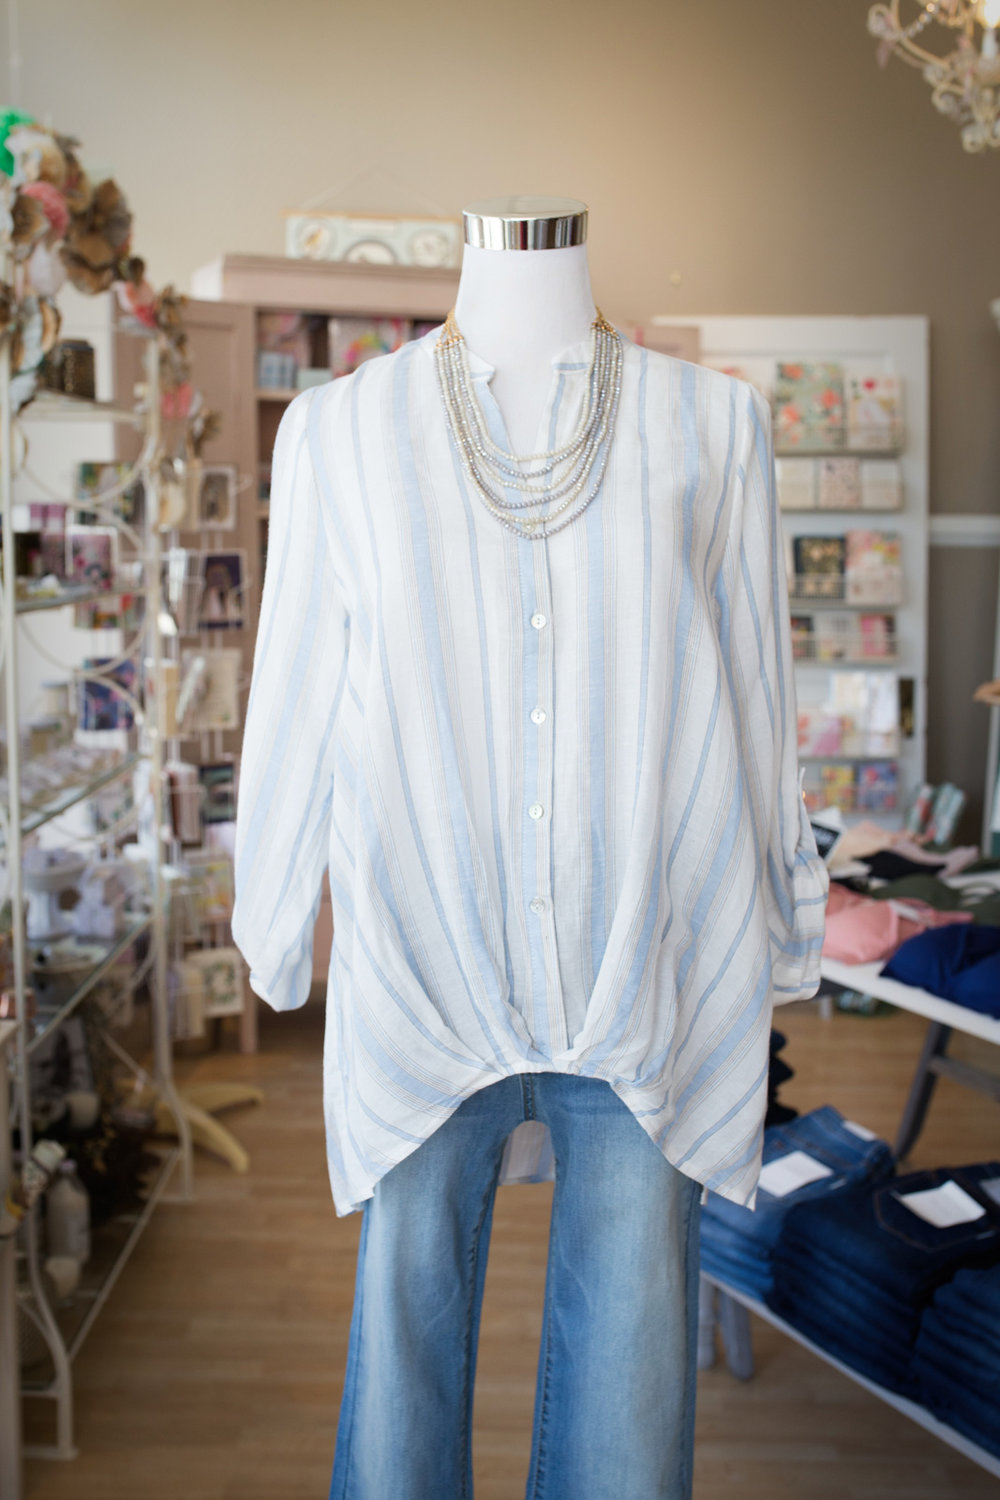 Meadow boutique seattle retail clothing store Yuliya Rae photography branding services-14.jpg